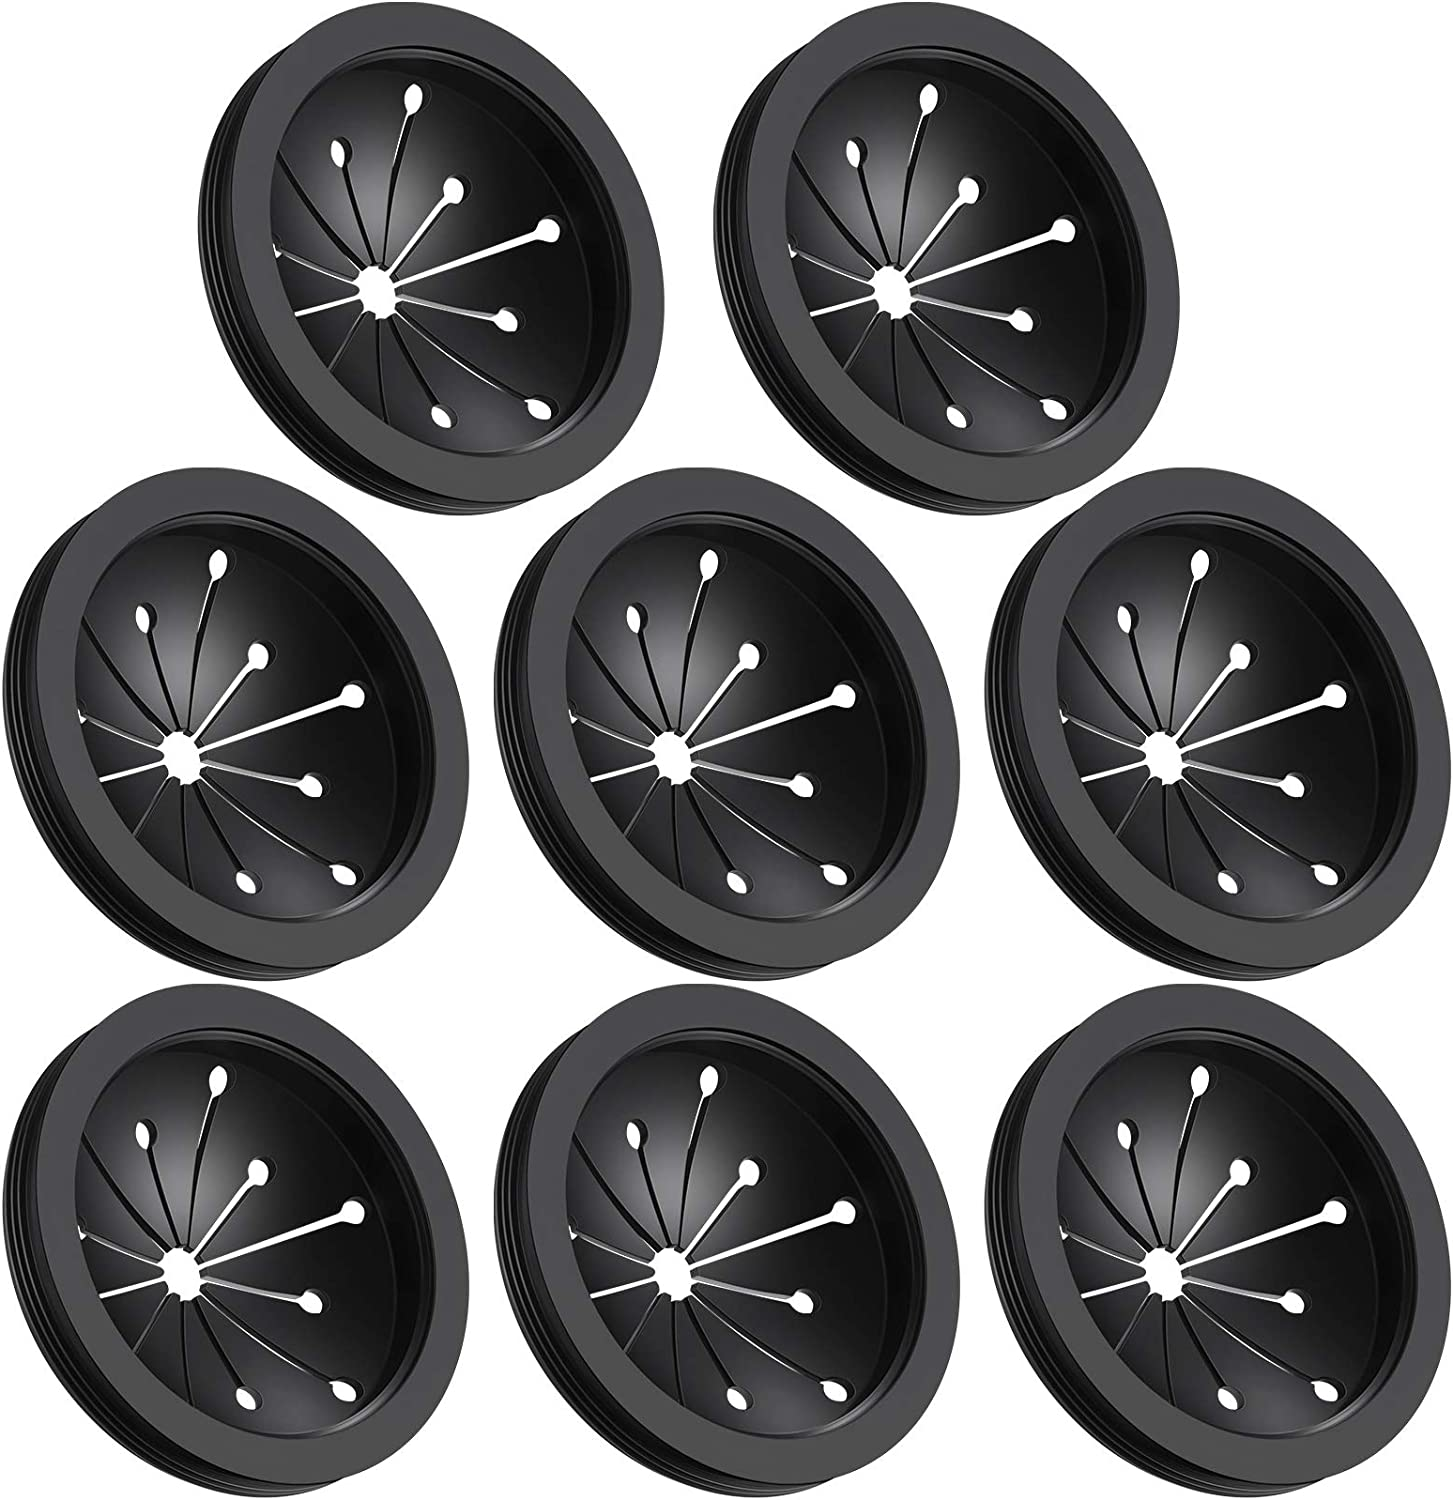 8 Pieces Garbage Disposal Splash Guards Sink Baffles Splash Stoppers Multipurpose Food Waste Disposer Accessories Kitchen Sink Accessories Compatible with Whirlaway, Sinkmaster, GE Models